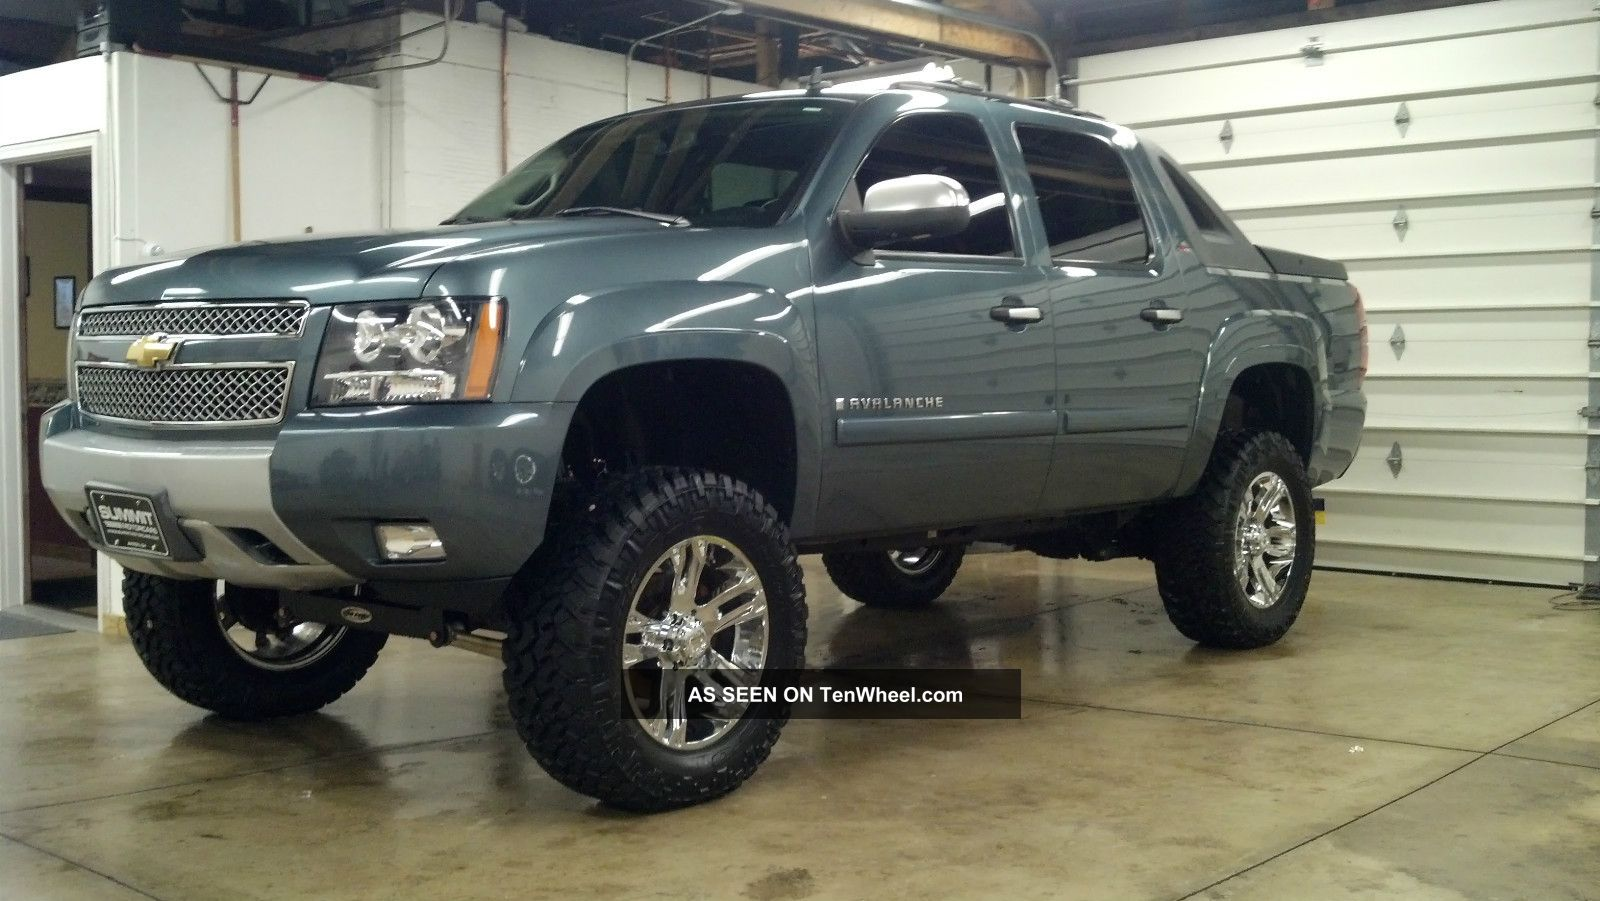 Watch also 2014 Silverado Ss Concept in addition 2016 Chevrolet Tahoe LT Z71 Lifted 4x4 in addition Watch additionally Wheel Offset 2001 Chevrolet Tahoe Super Aggressive 3 Suspension Lift 9 Custom Rims. on lifted tahoe z71